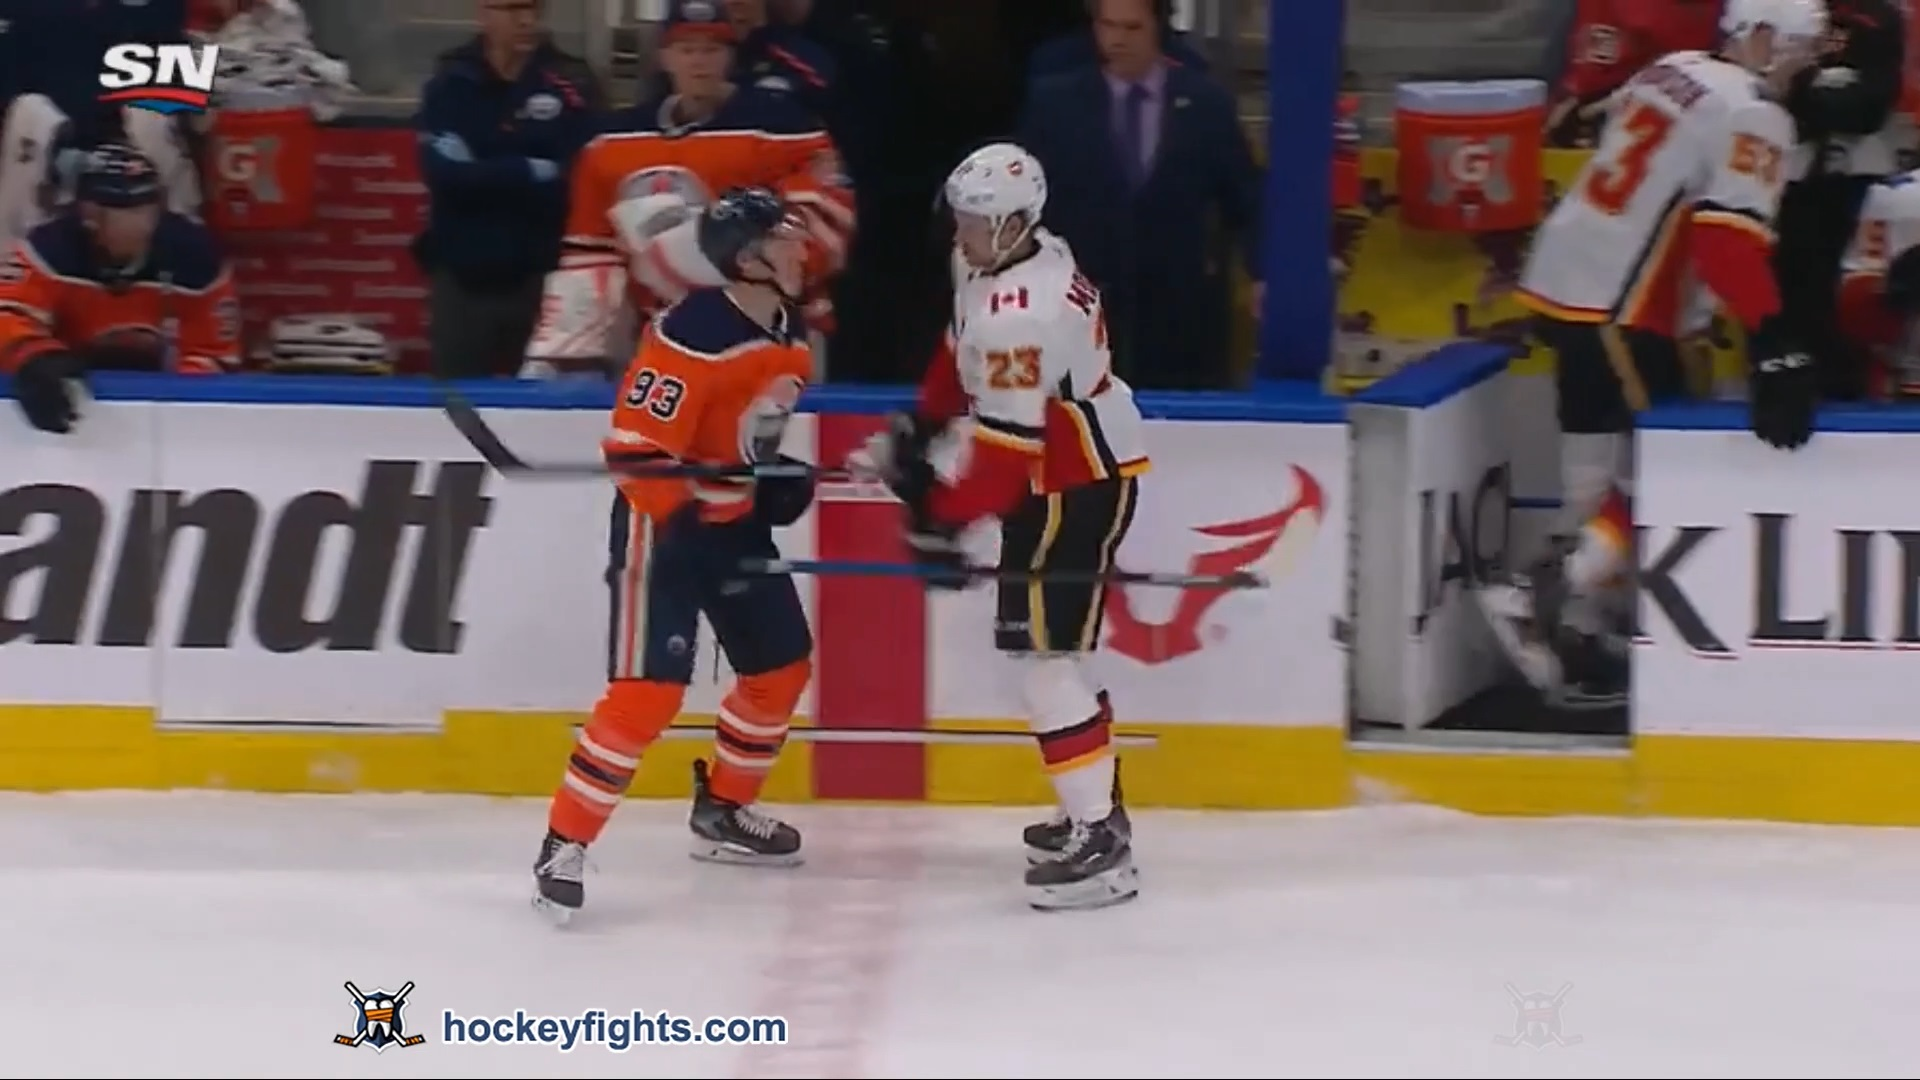 Ryan Nugent-Hopkins vs. Sean Monahan